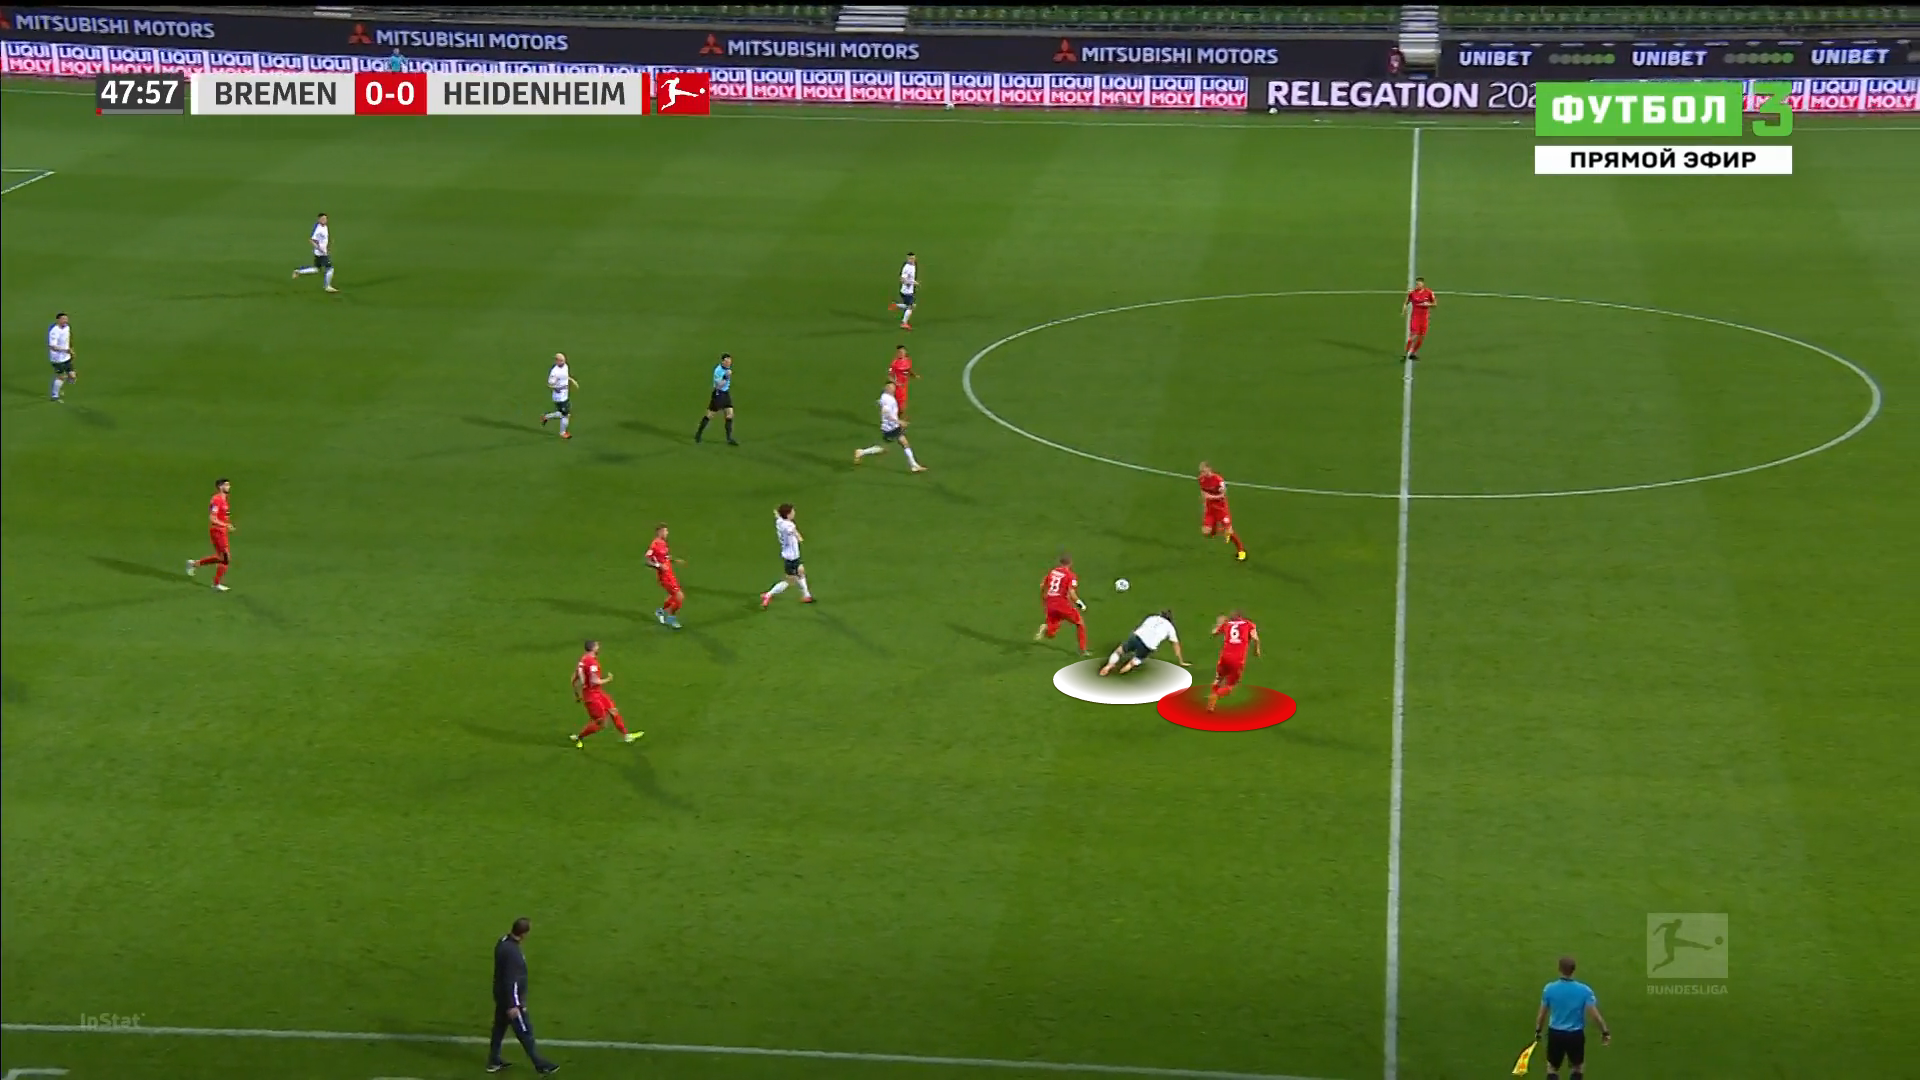 Bundesliga Playoffs 2019/2020: Werder Bremen vs Heidenheim - tactical analysis